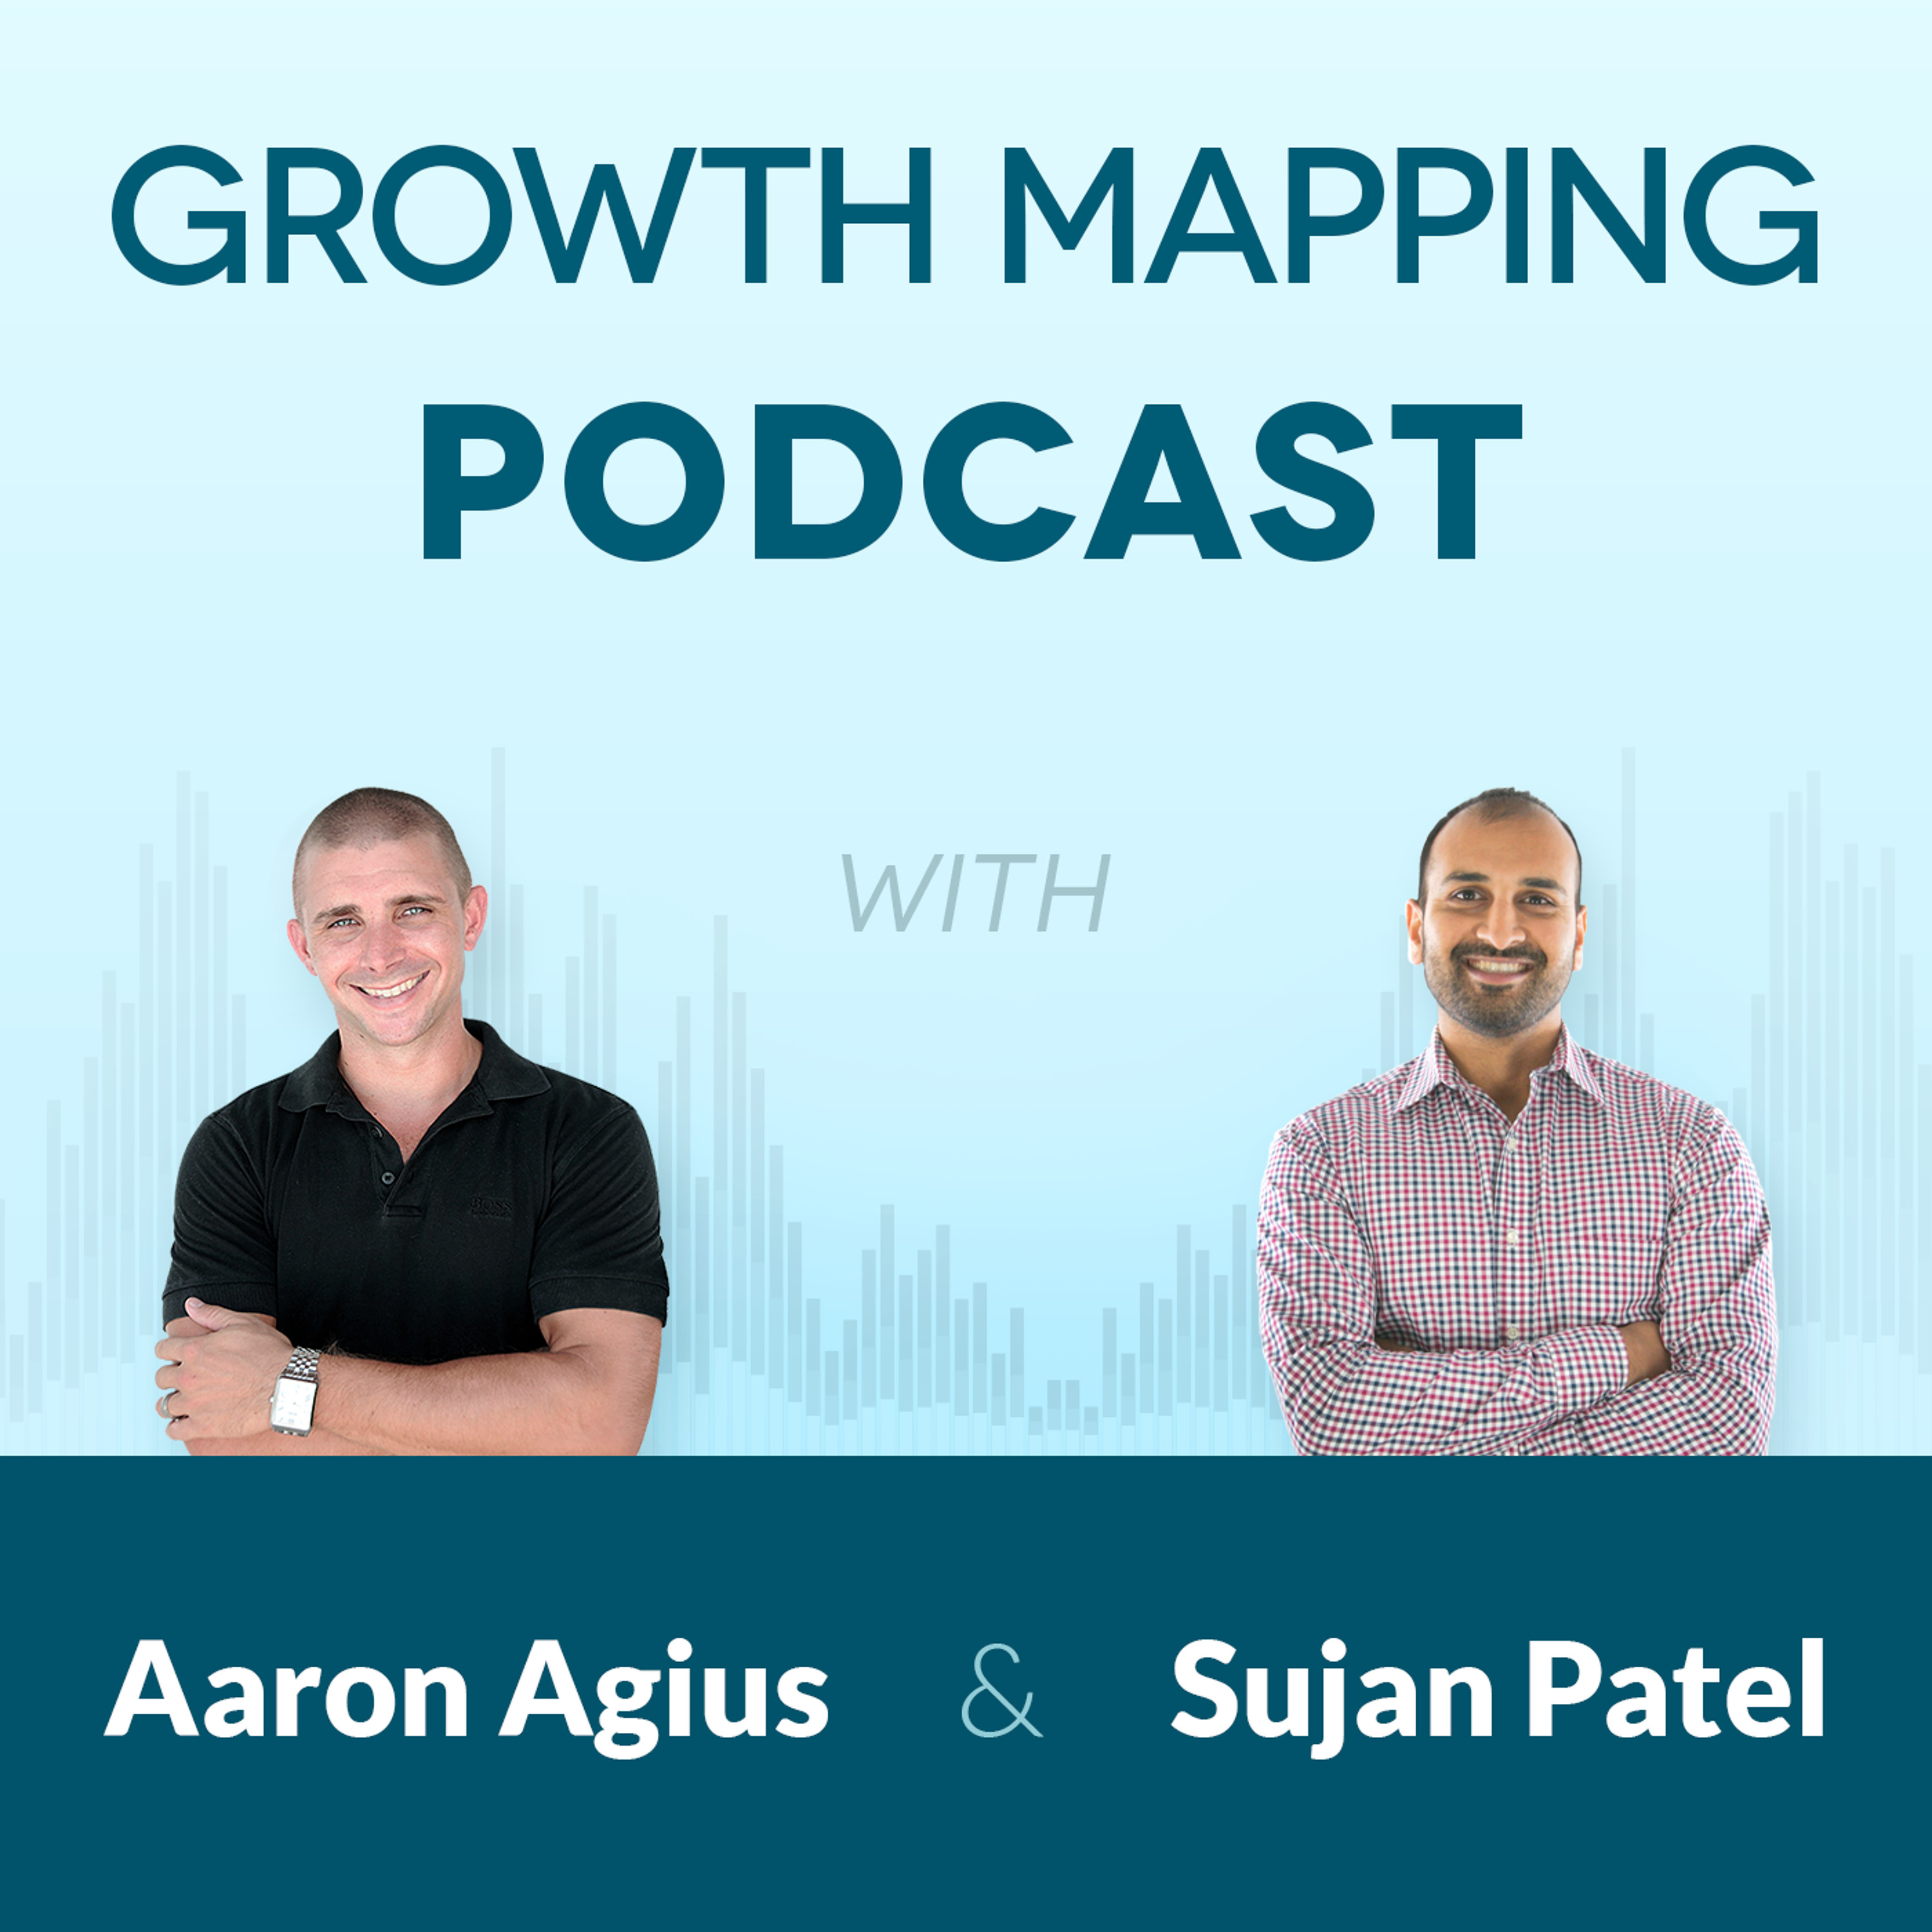 Ep 41 - How To Build A Sales Funnel Without SEO And Content Marketing